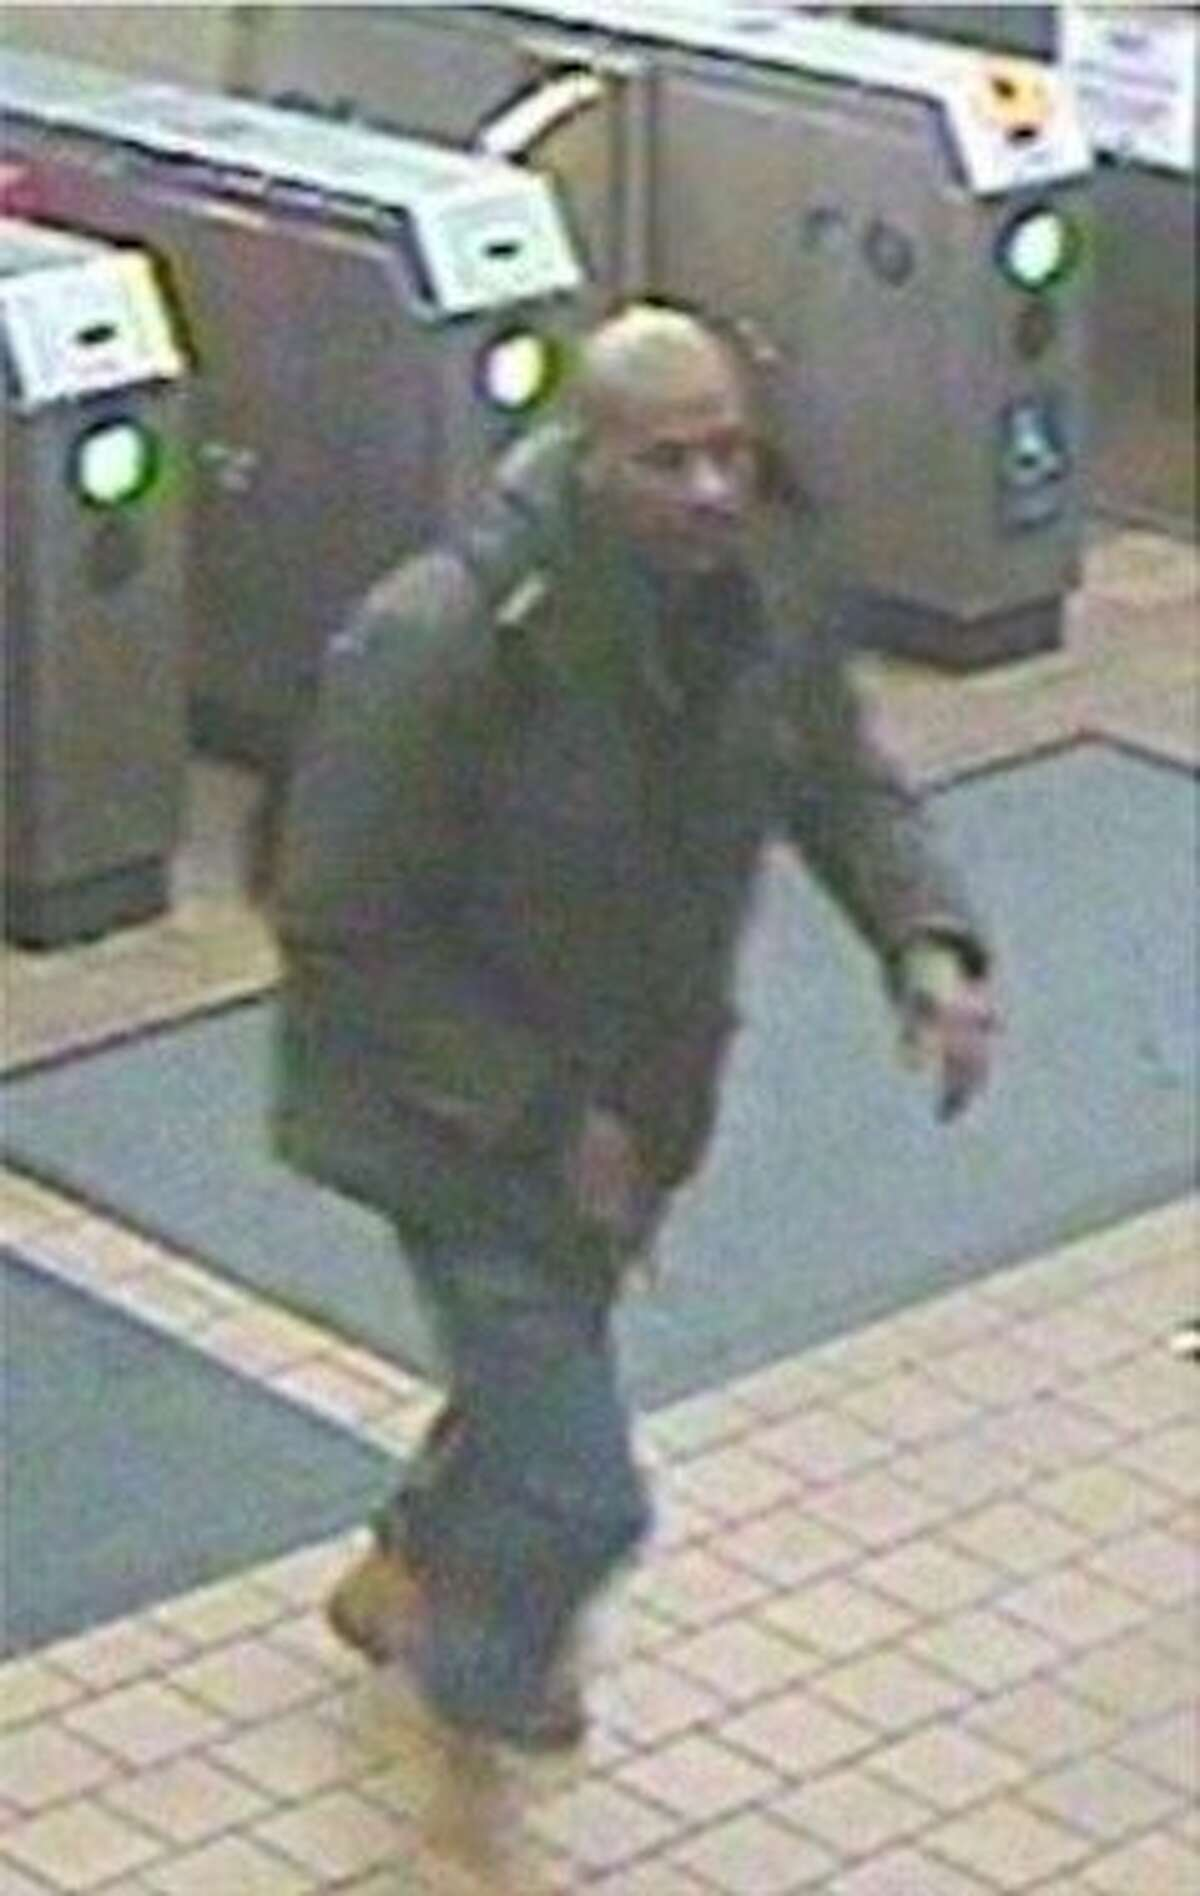 BART police on Wednesday released surveillance images of a suspect wanted in a brazen killing on a train at the West Oakland station over the weekend.